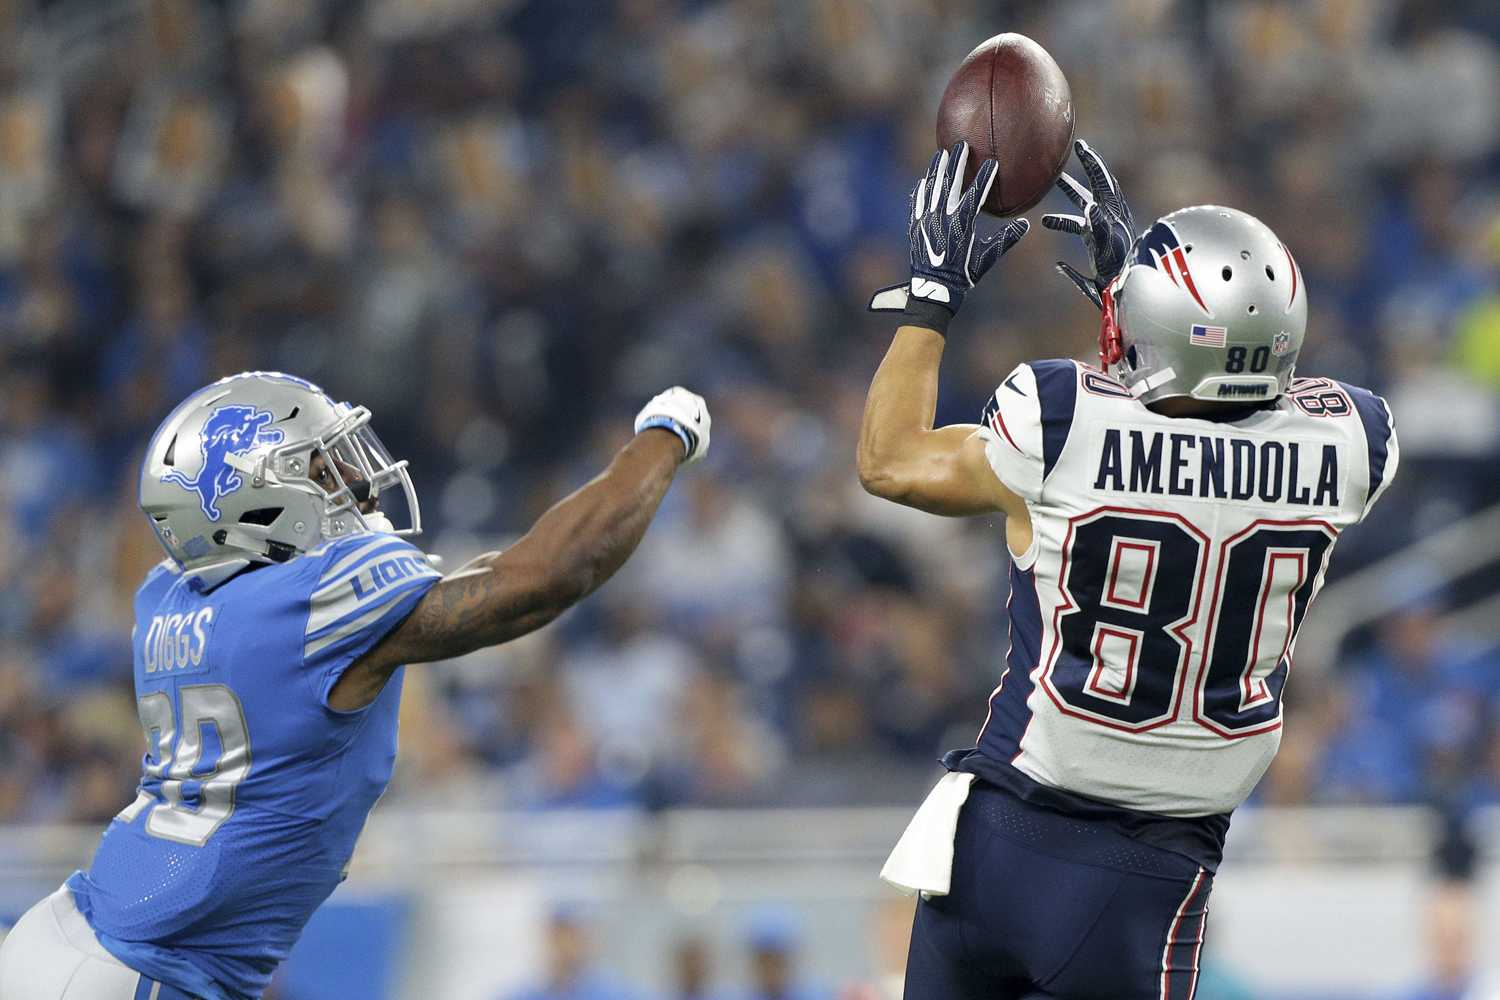 New England Patriots wide receiver Danny Amendola (80) goes up for a catch guarded by Detroit Lions cornerback Quandre Diggs (28) during the first half of a pre season NFL football game on Aug, 25, 2017 in Detroit, Mich. (Jorge Lemus/NurPhoto/Sipa USA/TNS)